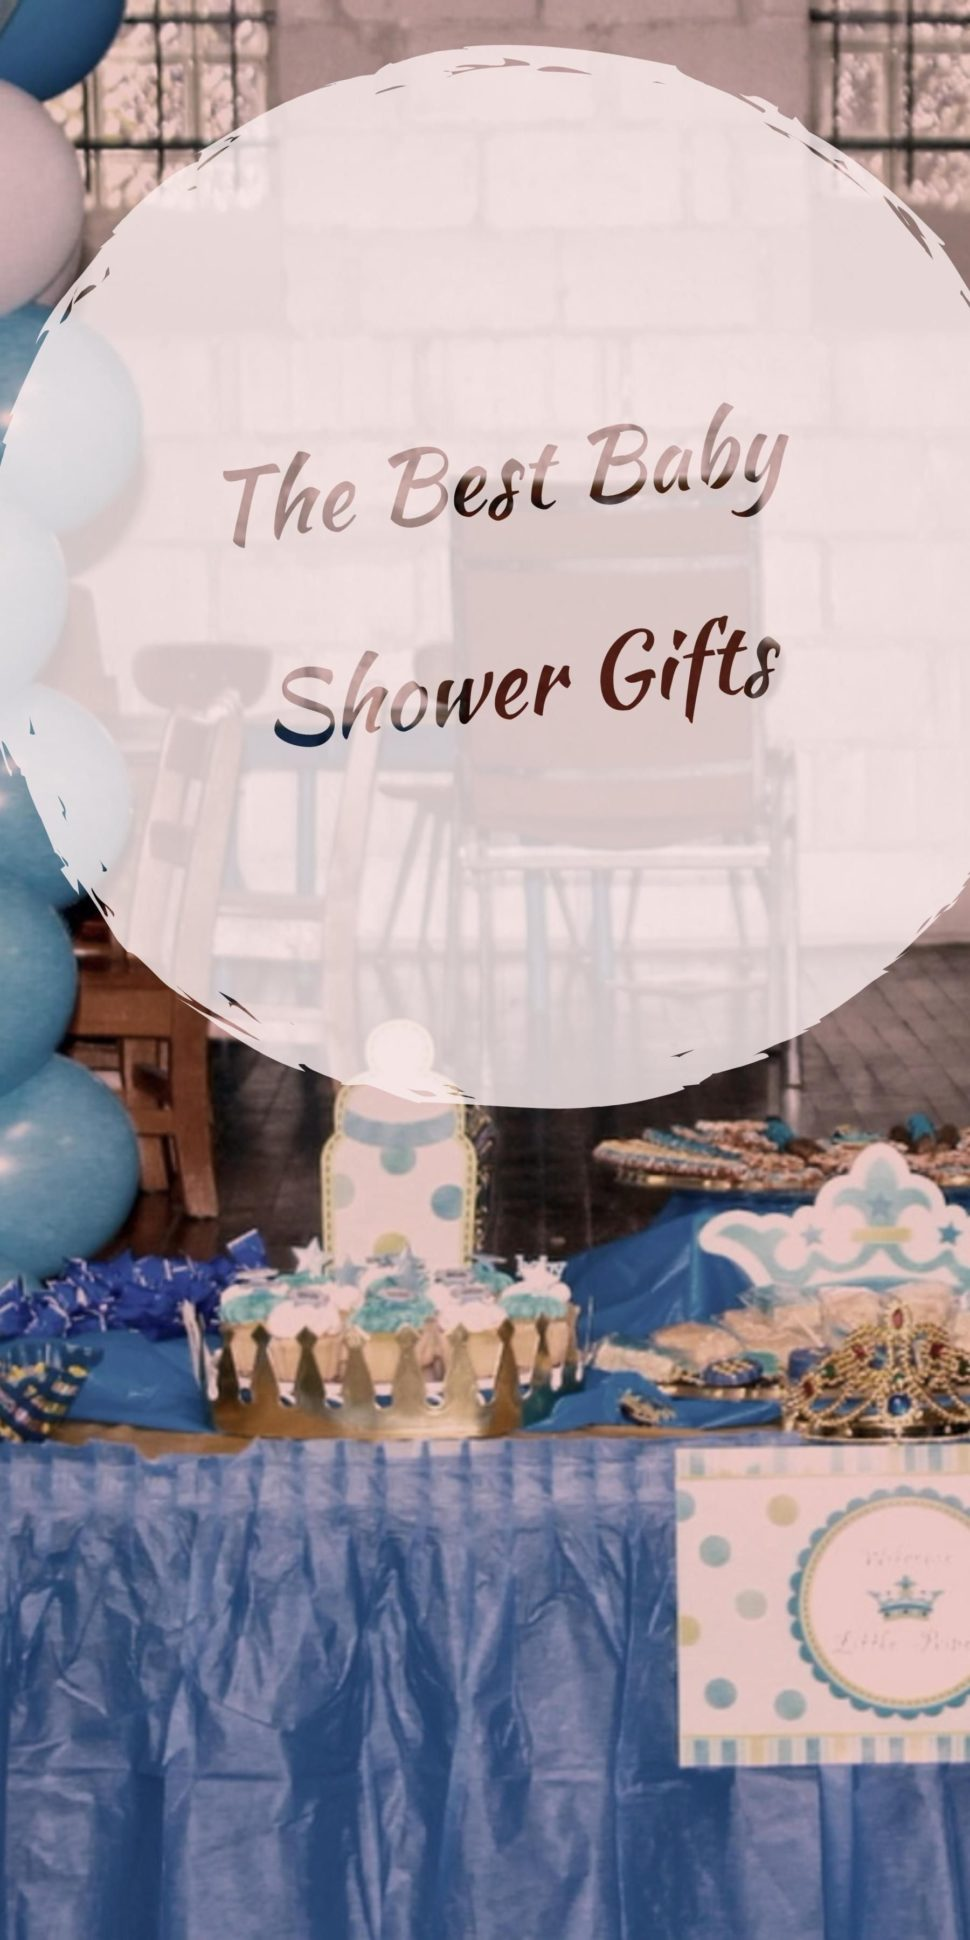 Medium Size of Baby Shower:93+ Superb Best Baby Shower Gifts Picture Concepts Best Baby Shower Gifts That Stand Out From The Crowd Babies Gift The Best Baby Shower Gifts That You Can Get An Expectant Mother